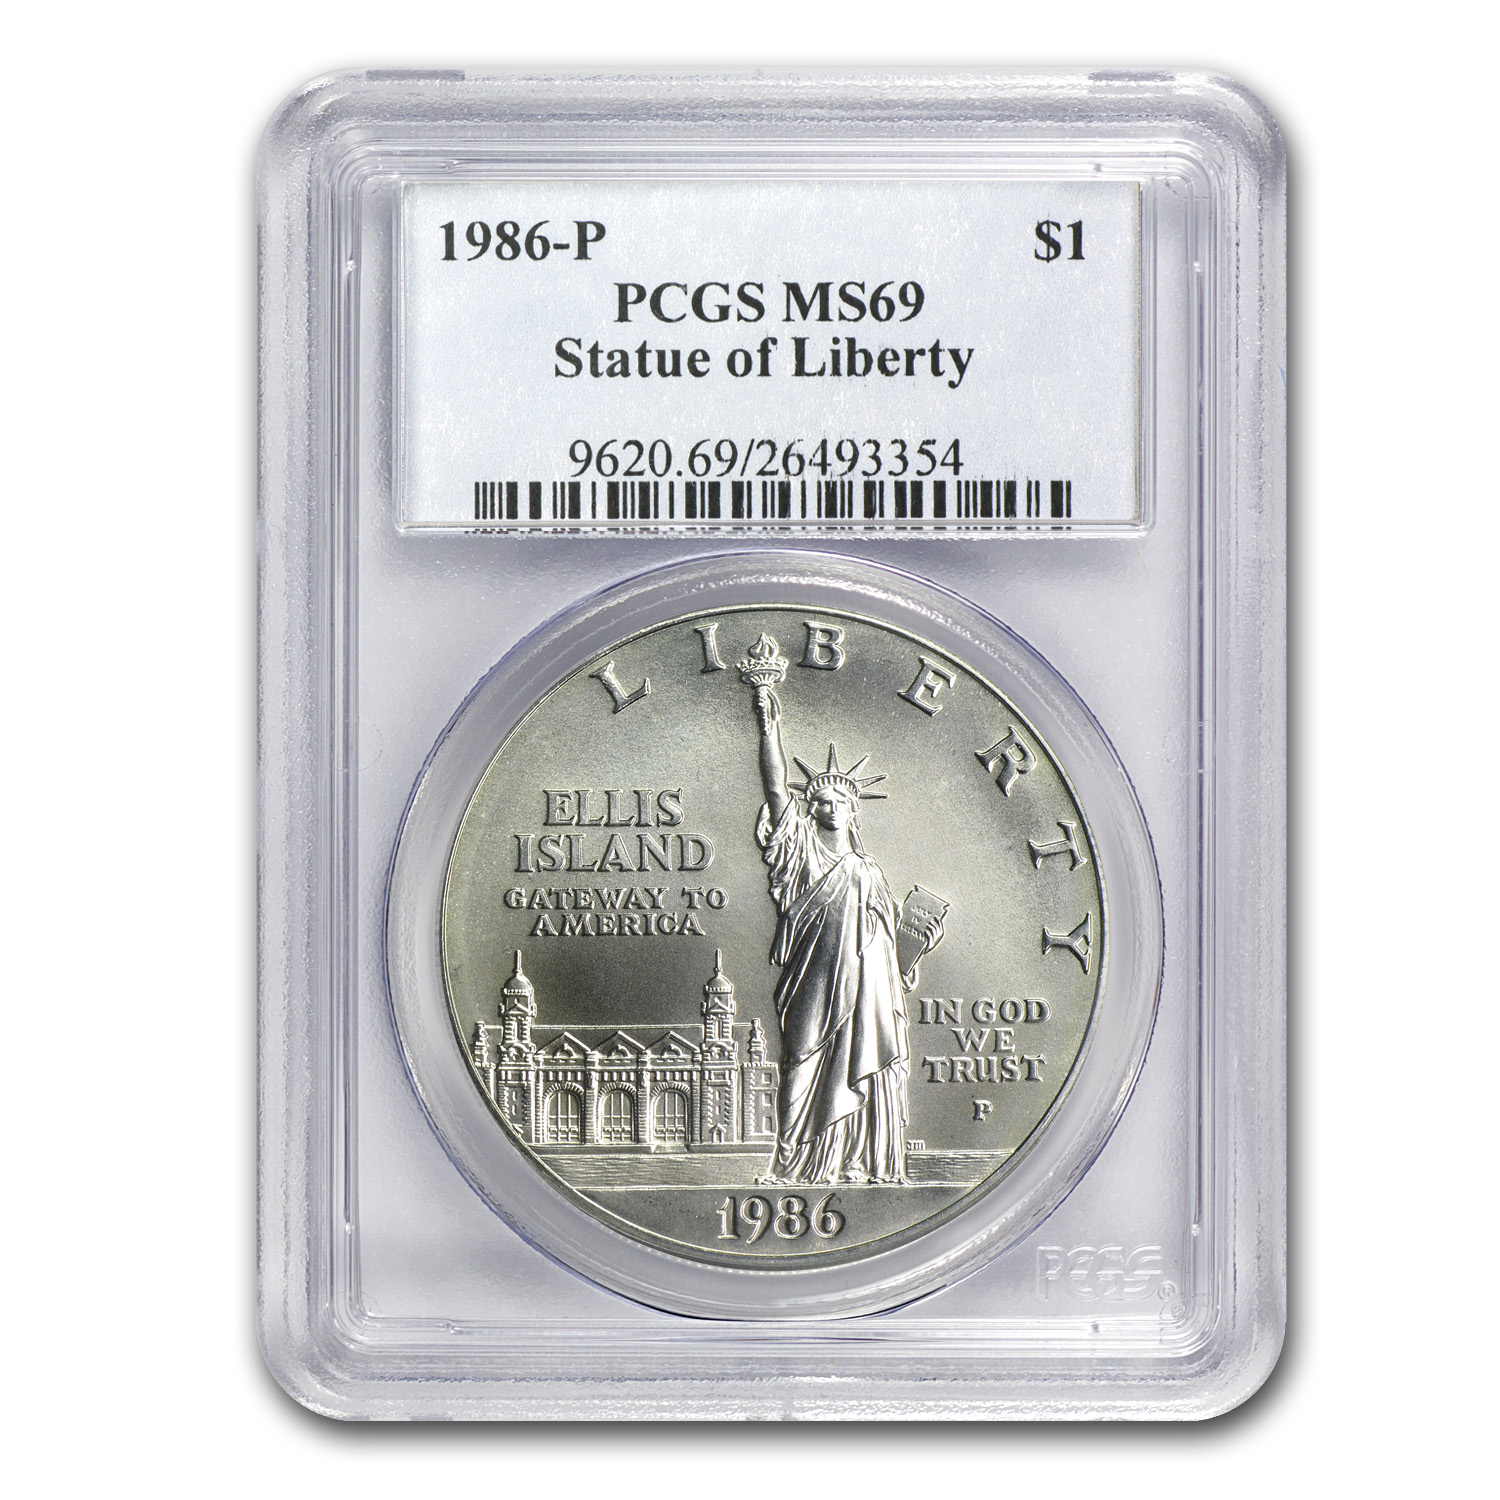 1986-P Statue of Liberty $1 Silver Commemorative - MS-69 PCGS